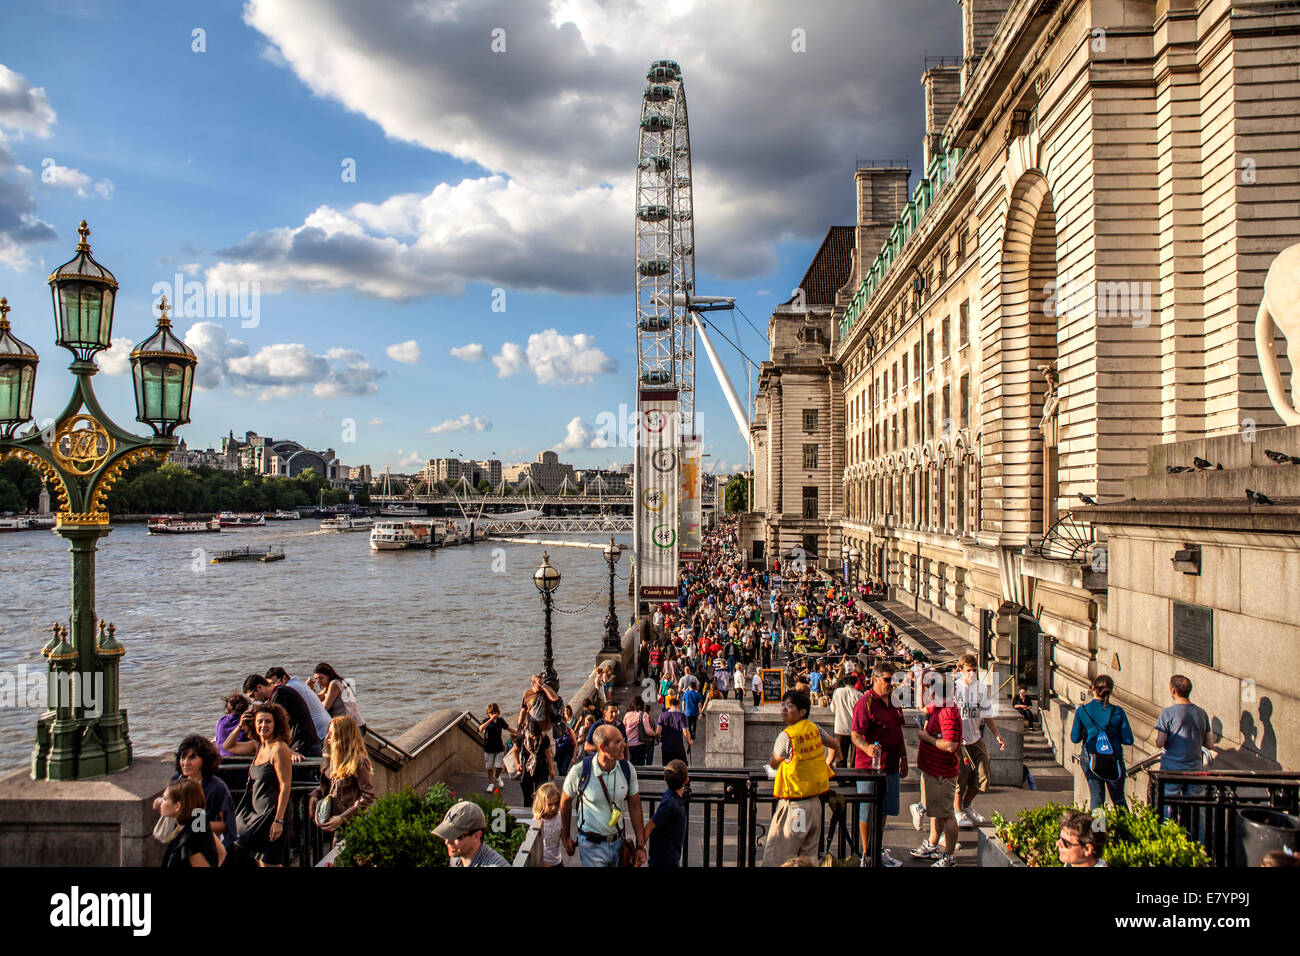 View of the London big wheel (London Eye) with Thames River and London Aquarium - Stock Image